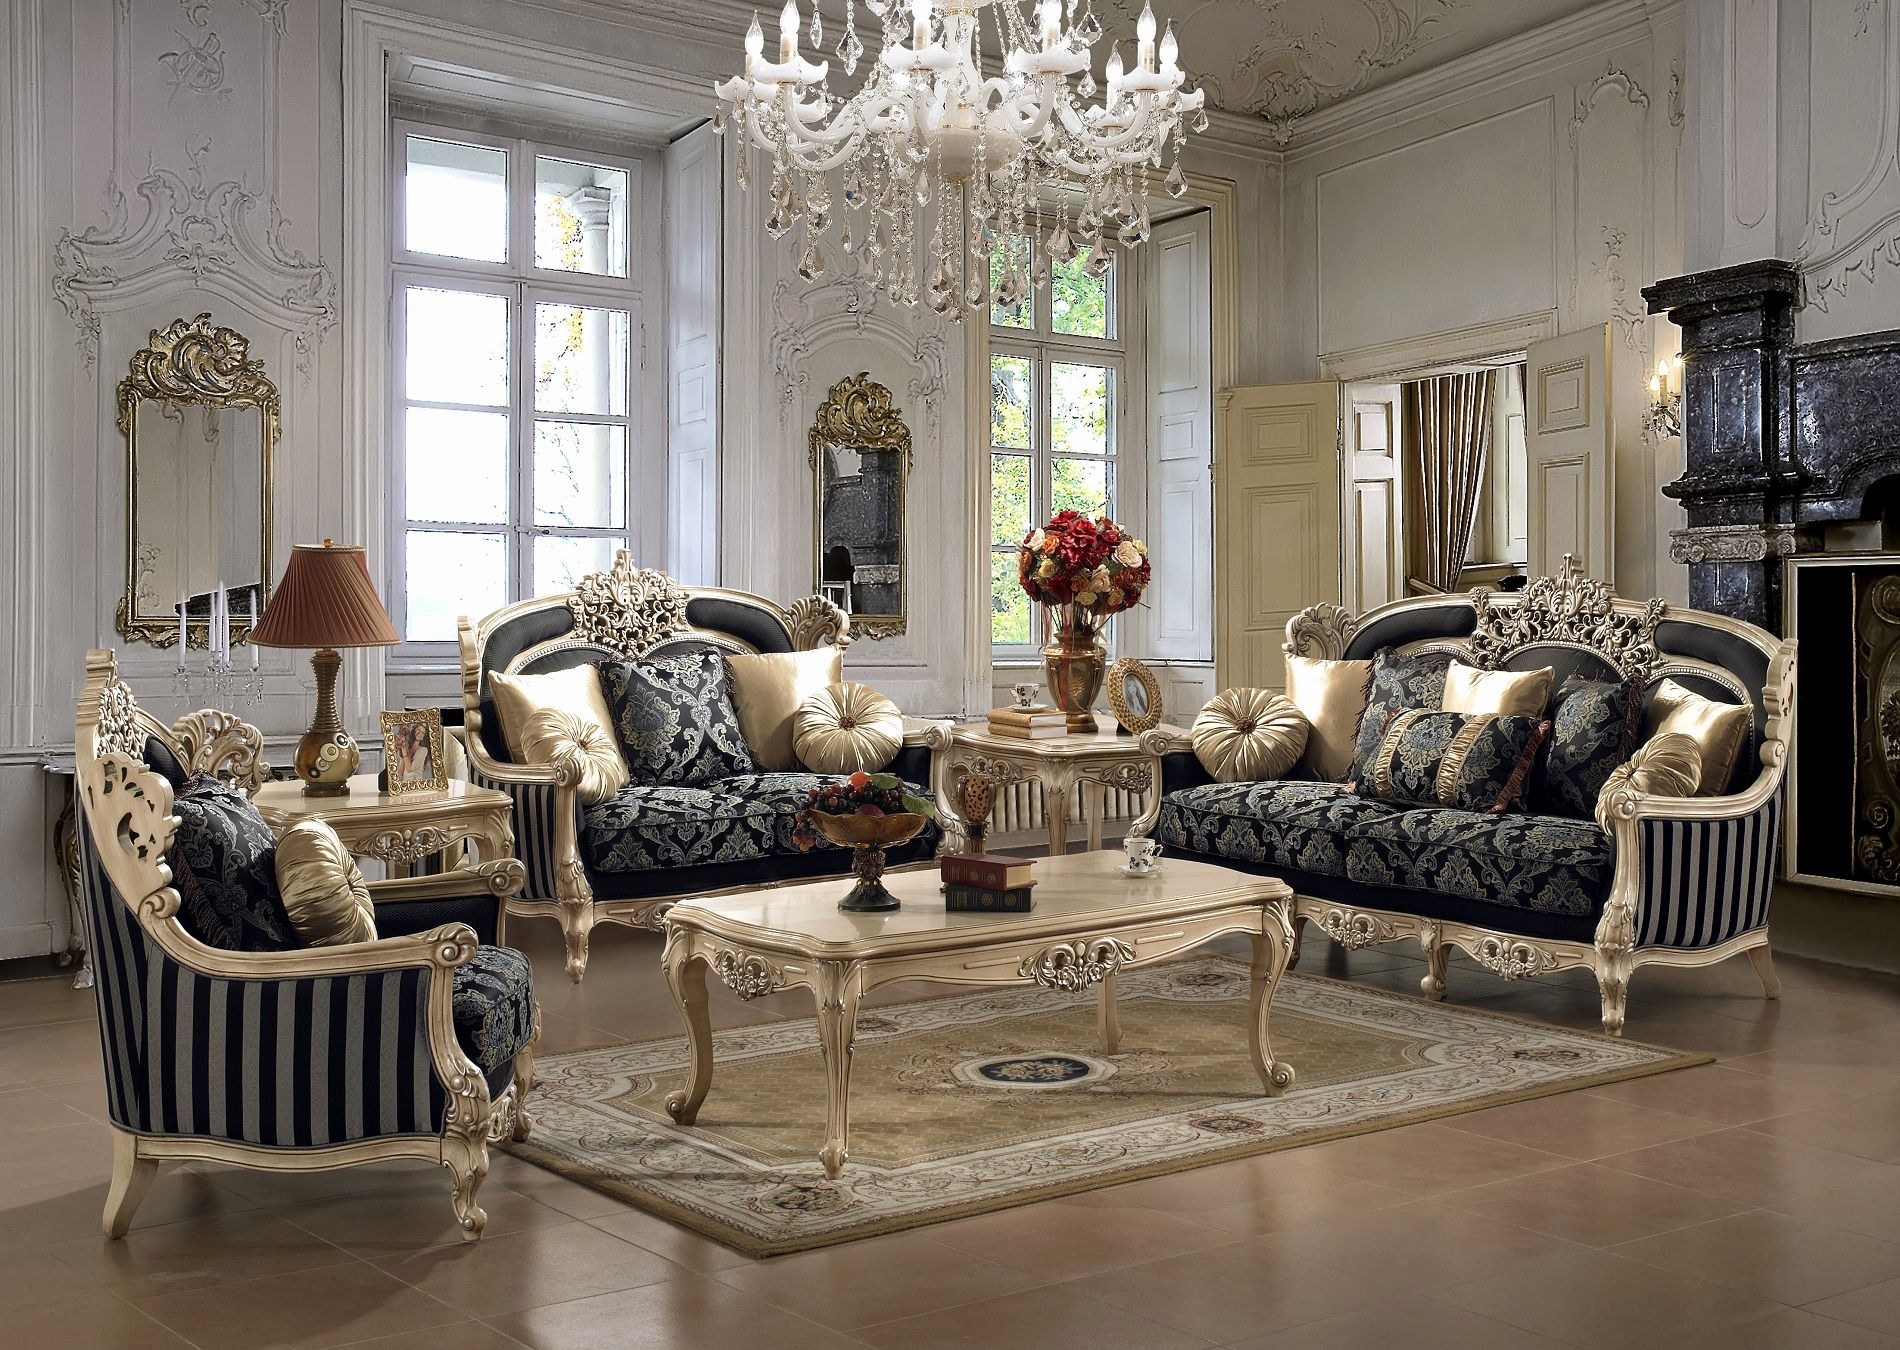 Inspirational Italian Sofa Set Pics 3pc Italian European Antique